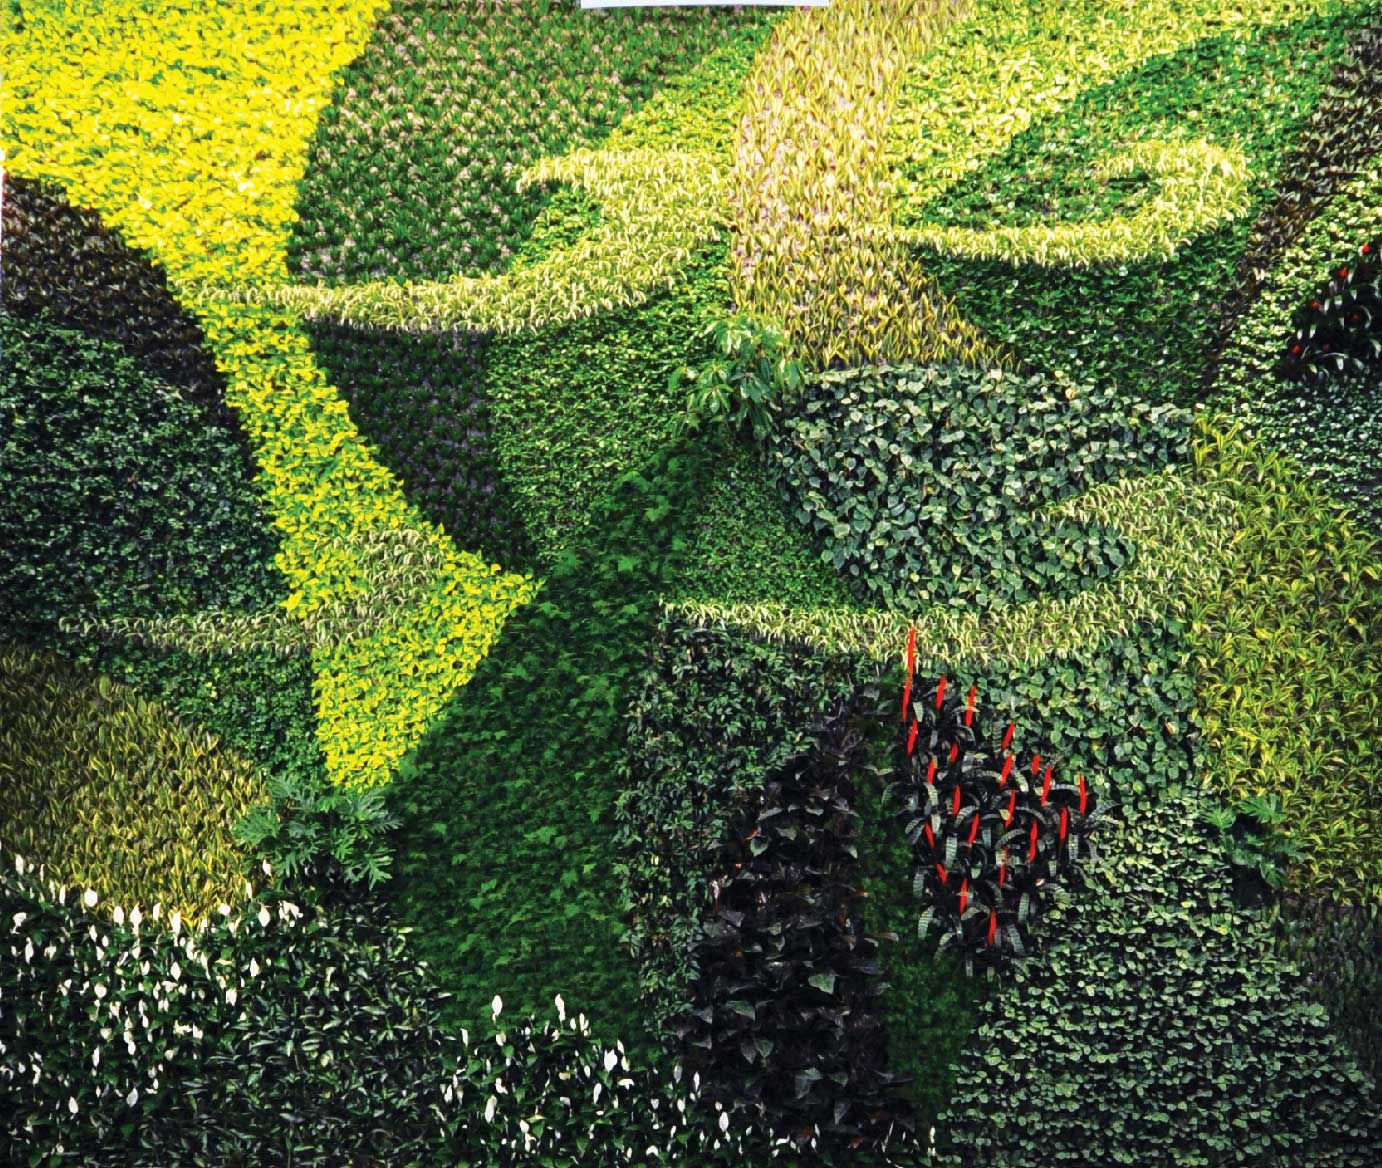 Interior living walls sustainable architecture and for Green wall art